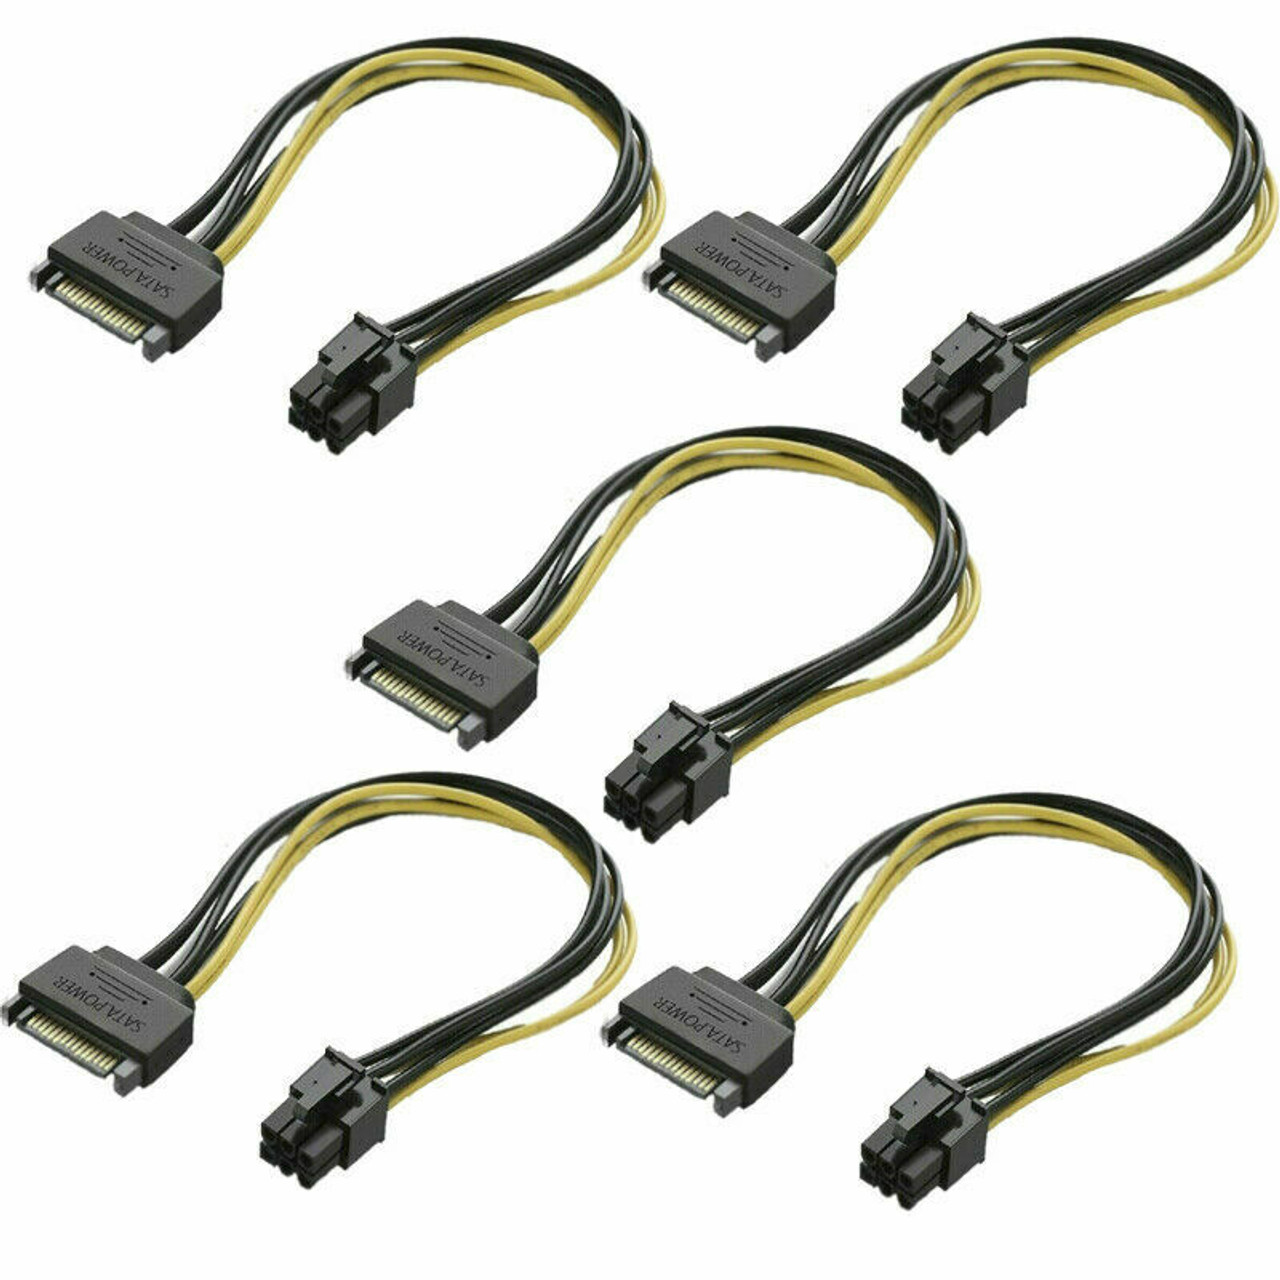 (5 Pack) SATA 8-Inch 15-Pin to 6-Pin PCI Express Card Power Cable